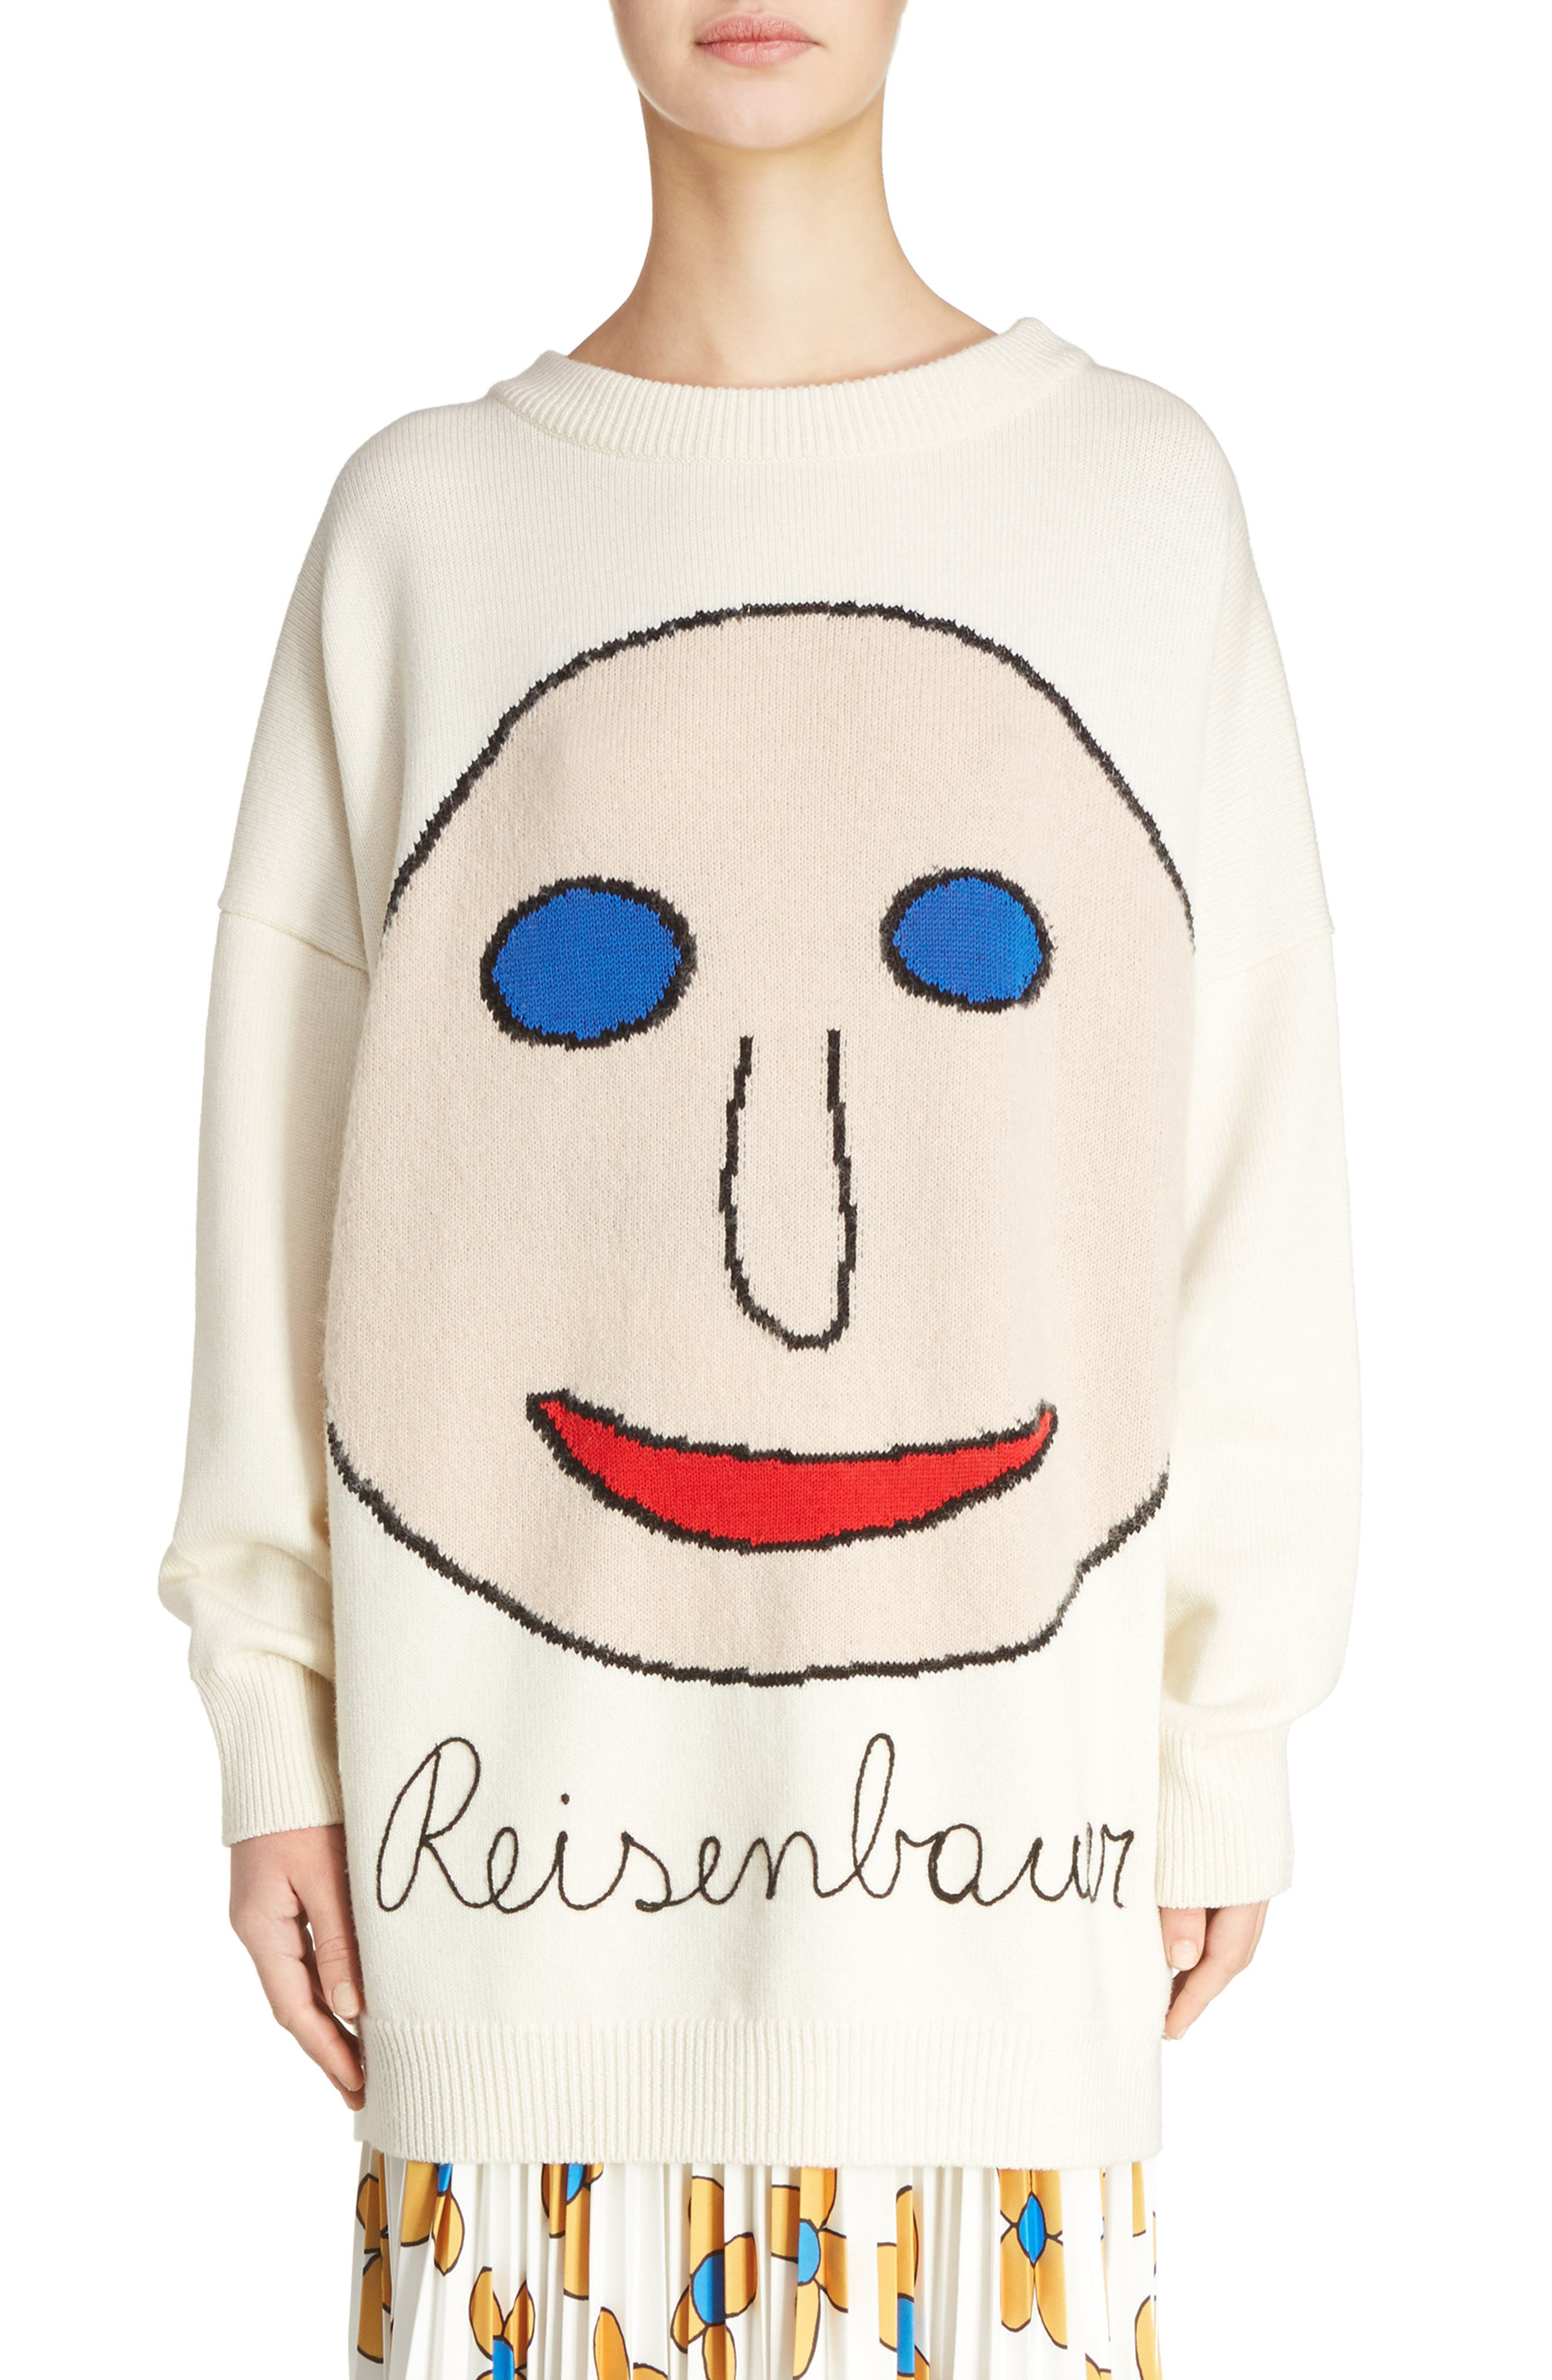 Christopher Kane Reisenbauer Intarsia Face Sweater